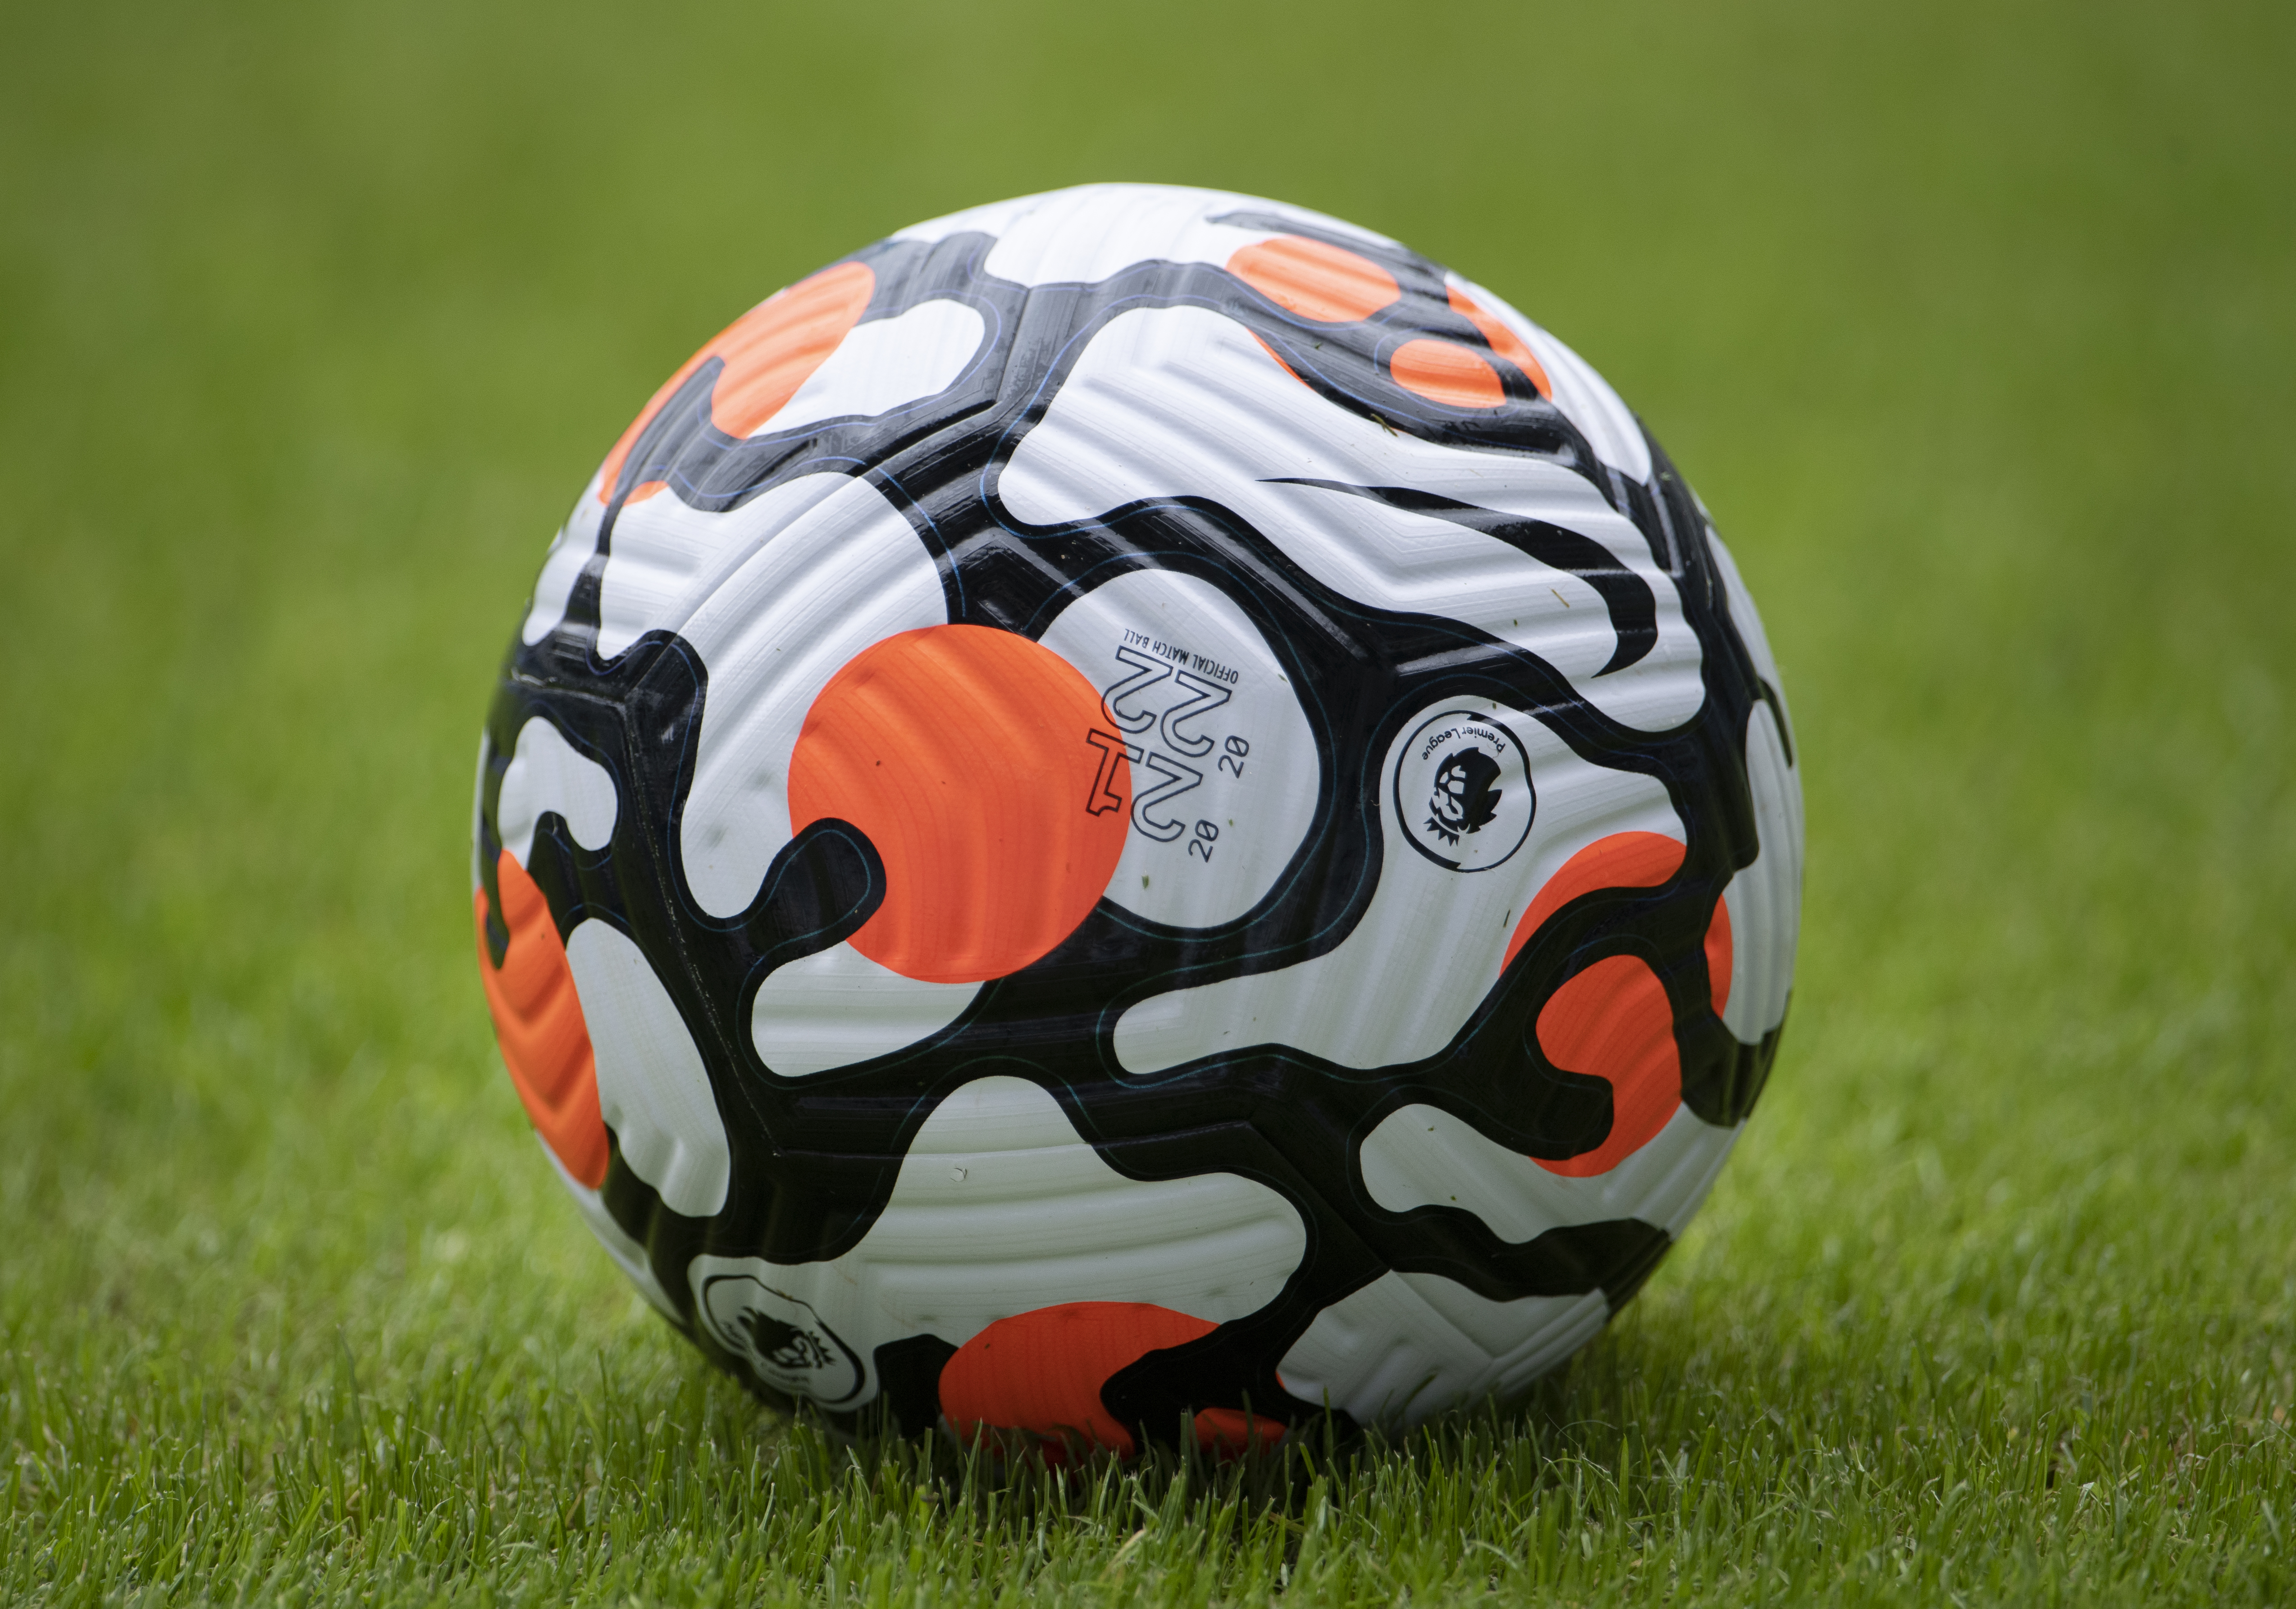 The official Nike Premier League match ball during the pre-season friendly between Coventry City and Wolverhampton Wanderers at the Coventry Building Society Arena on August 1, 2021